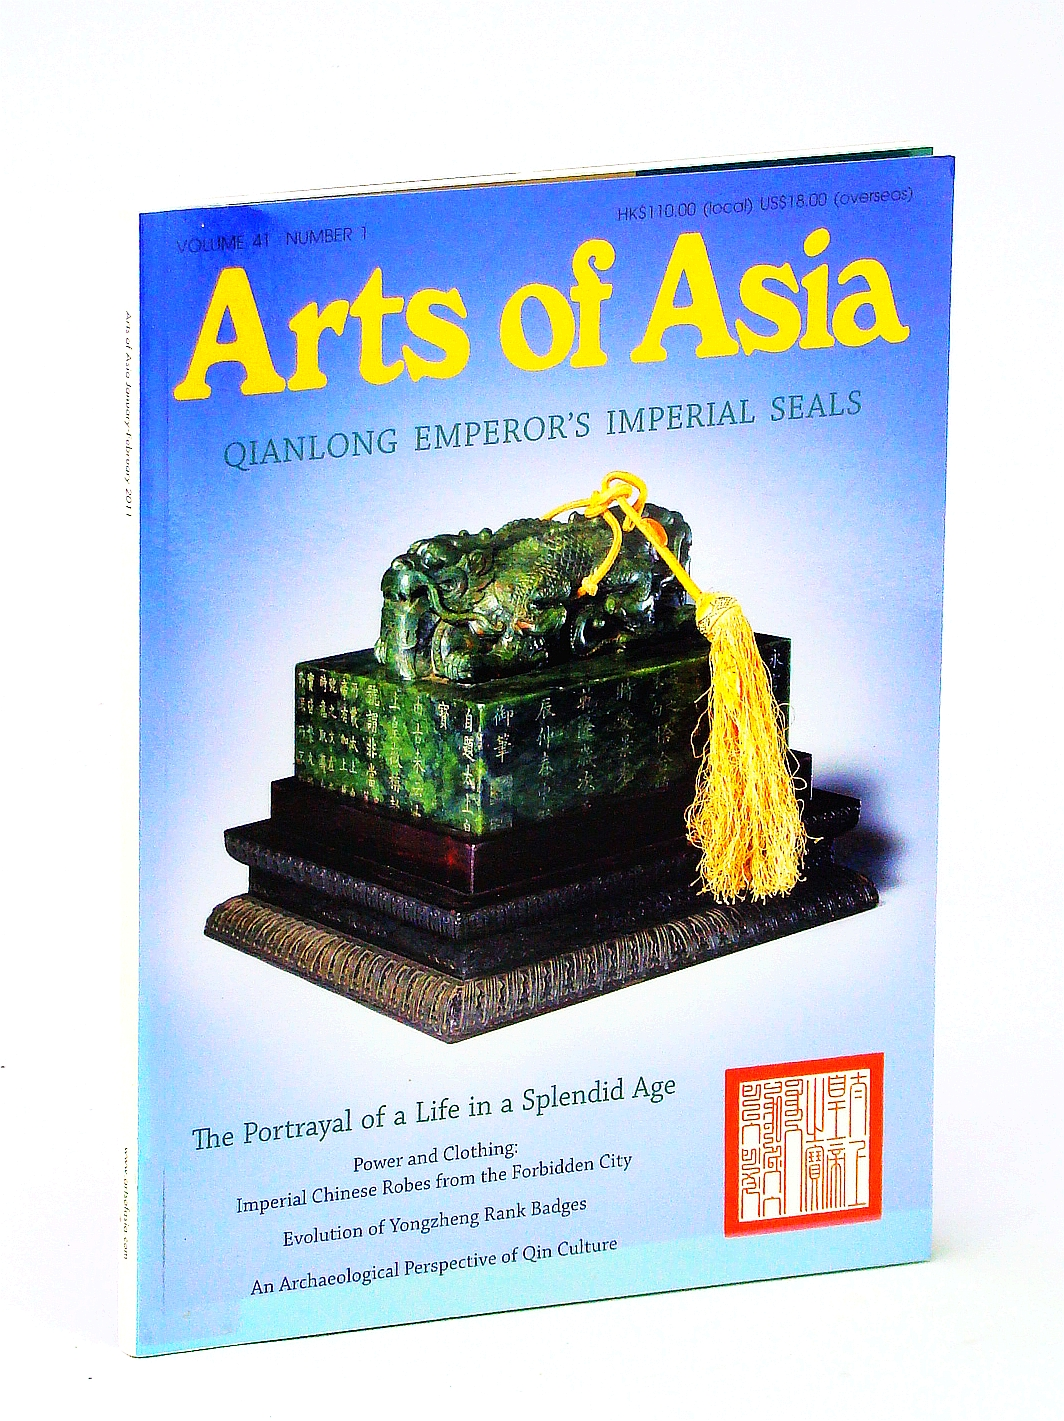 Image for Arts of Asia Magazine, Volume 41, Number 1, February [Feb.] 2011 - Qianlong Emperor's Imperial Seals